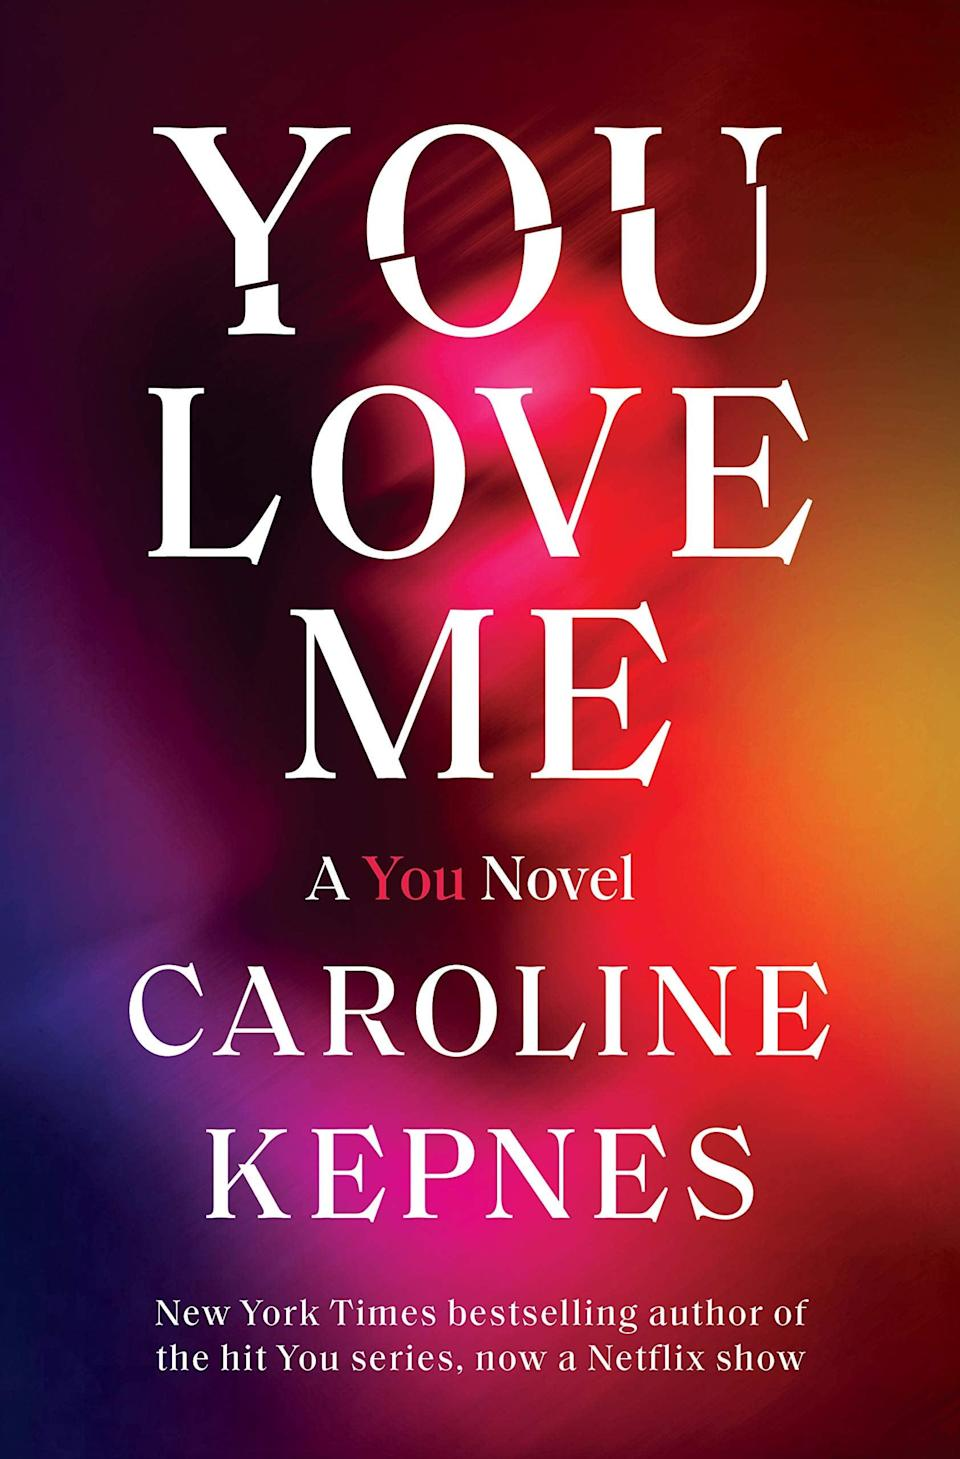 "<p>Joe returns in the third installment of Caroline Kepnes' <strong>You</strong> series, <a href=""https://www.amazon.com/You-Love-Me-Novel/dp/0593133781/"" class=""link rapid-noclick-resp"" rel=""nofollow noopener"" target=""_blank"" data-ylk=""slk:You Love Me""><strong>You Love Me</strong></a>. This time around, Joe has moved to the Pacific Northwest where he's starting over as a librarian. However, it doesn't take long for him to give in to his worst impulses when he becomes fixated on his co-worker, Mary Kay DiMarco. </p> <p><em>Out April 6</em></p>"